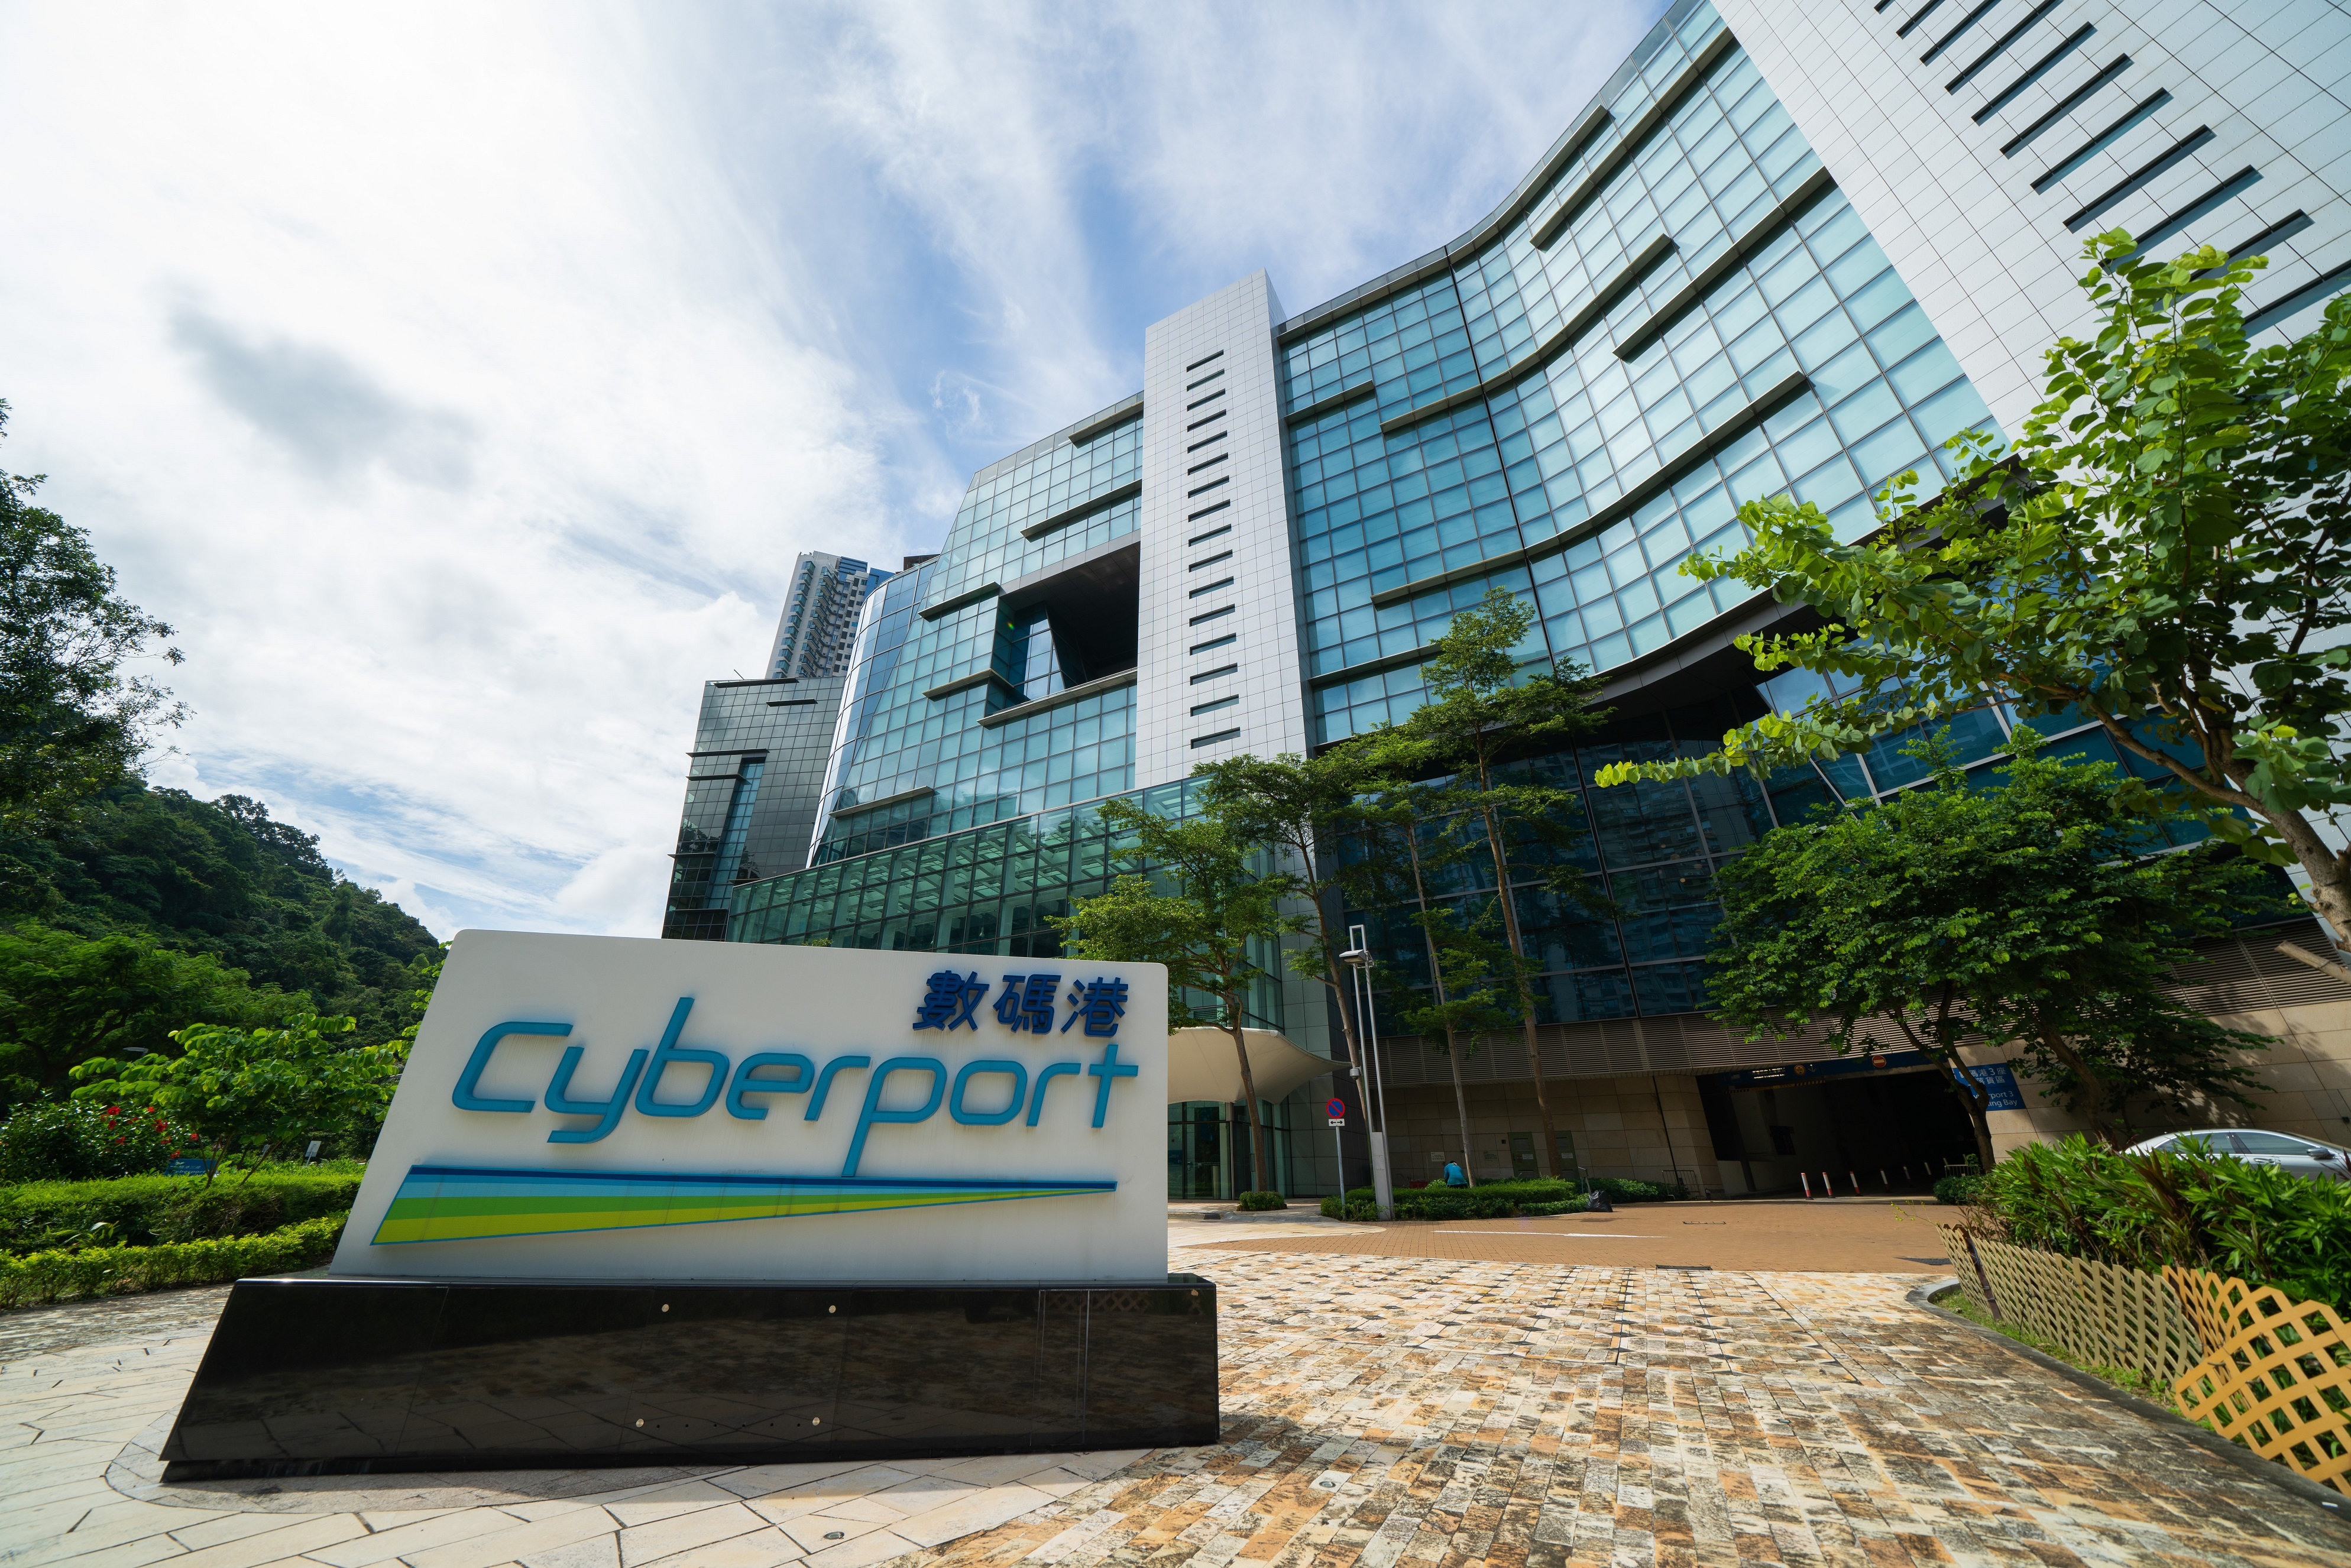 Cyberport Community Dedicated to Developing 5G Solutions to Enhance Lifestyle Experience and Business Applications